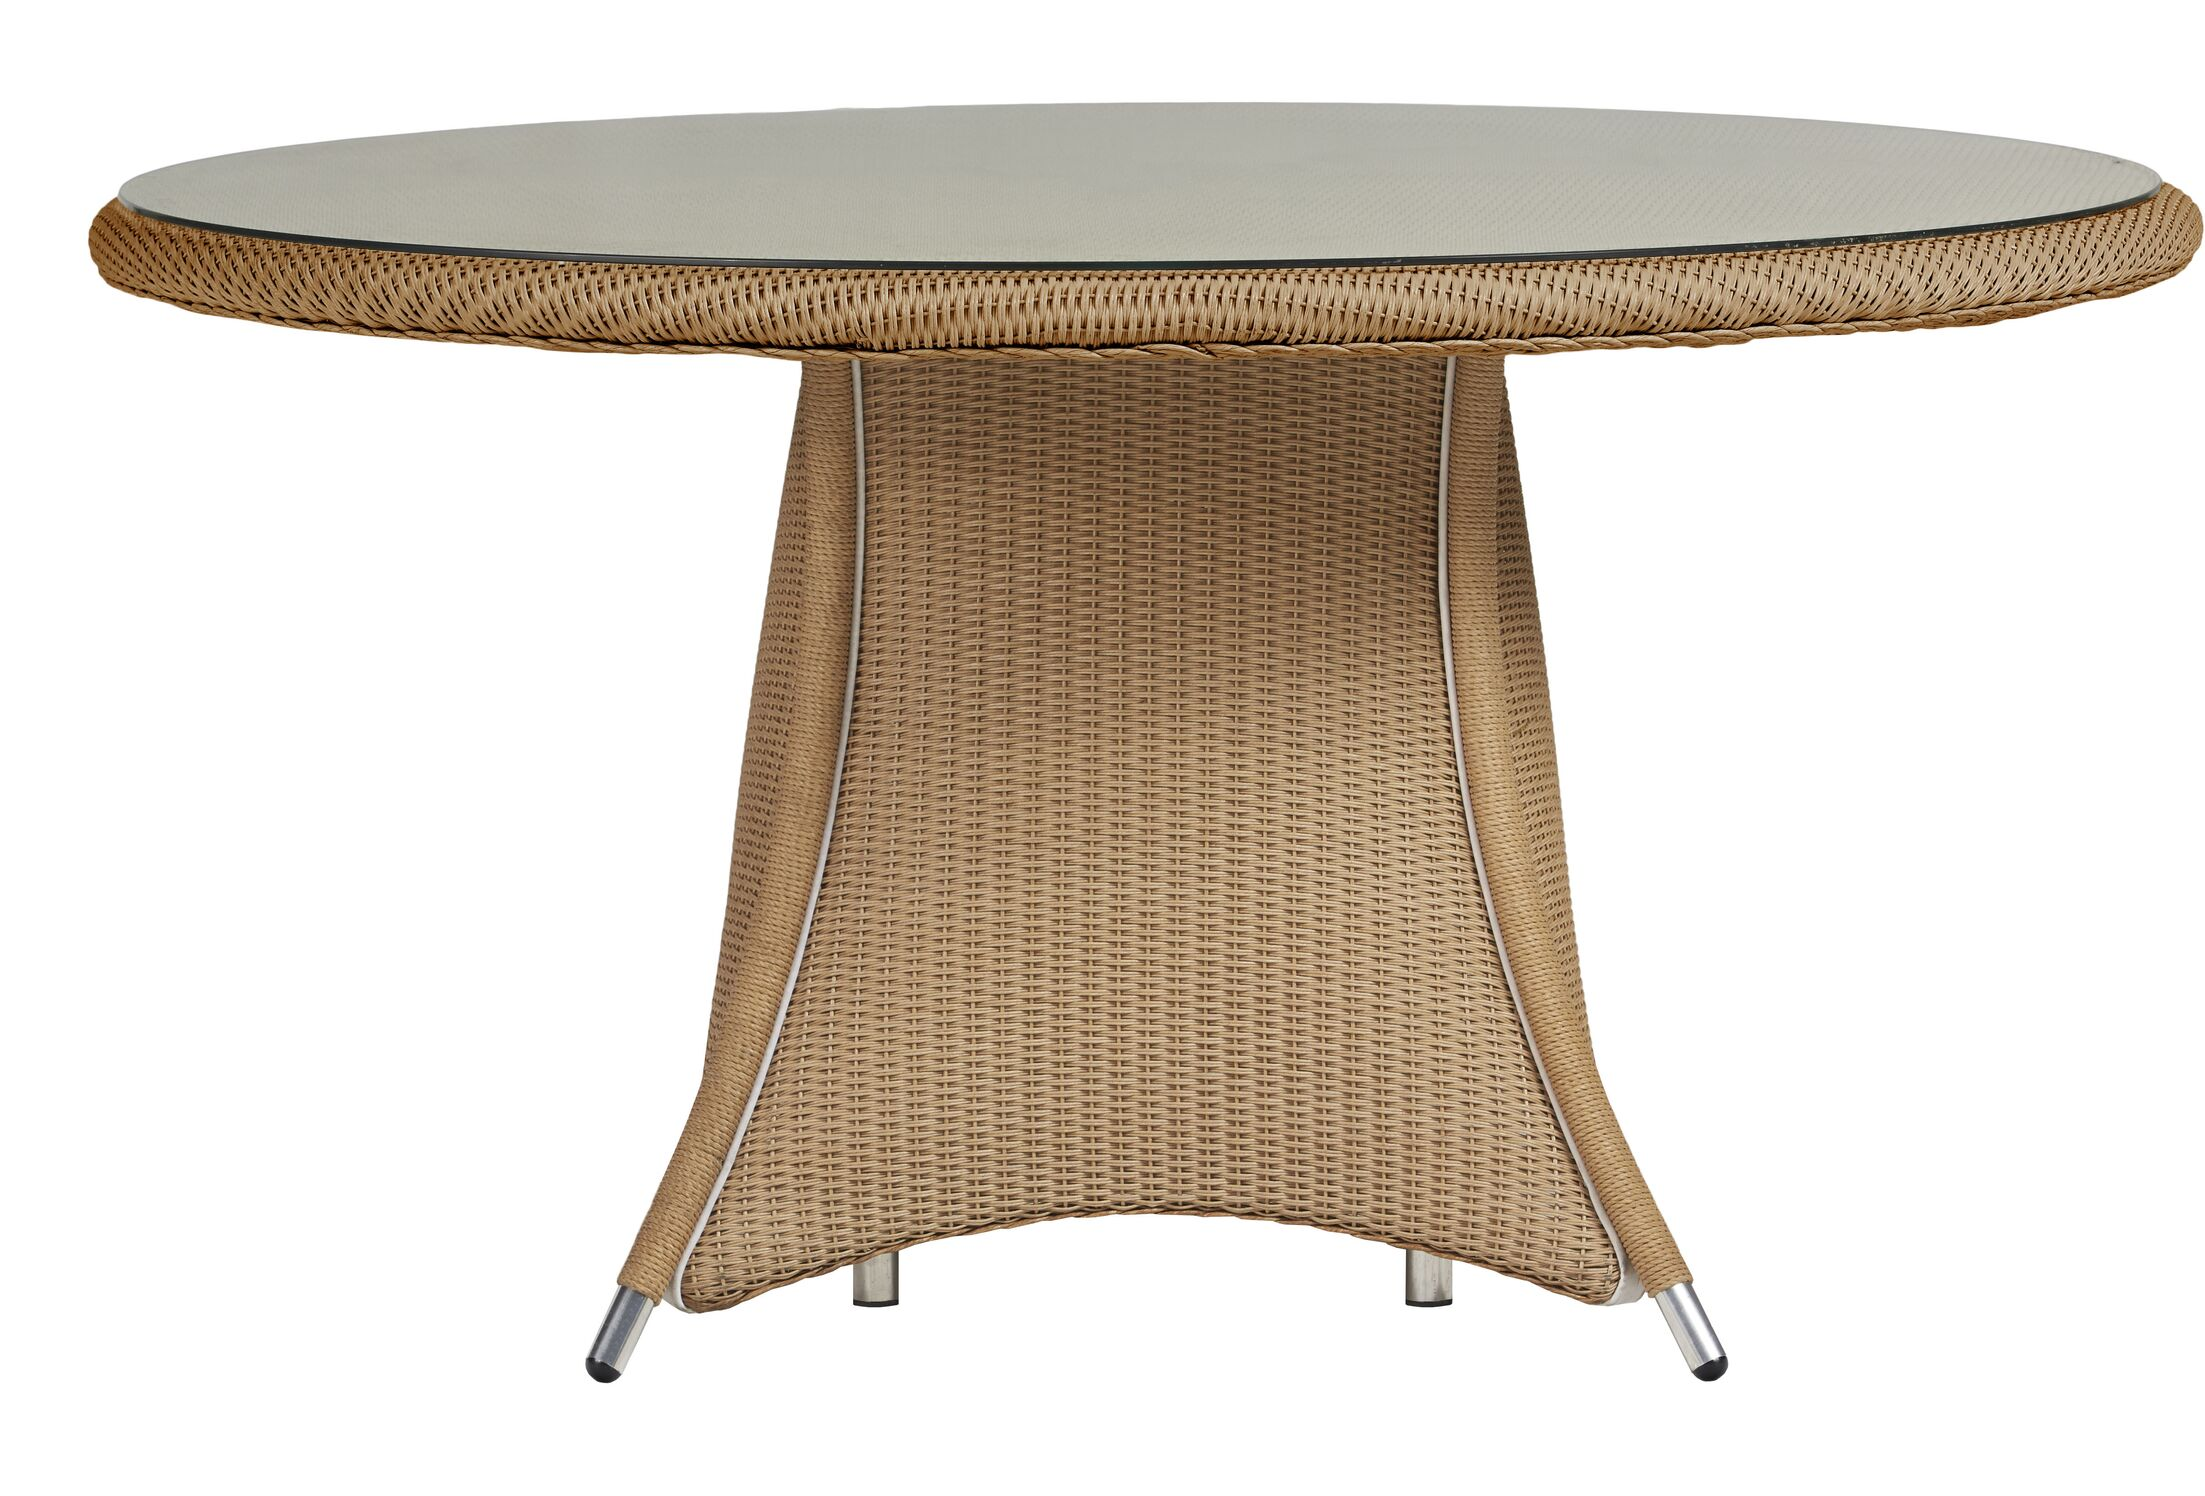 Generations Wicker Rattan Dining Table Finish: Antique Khaki